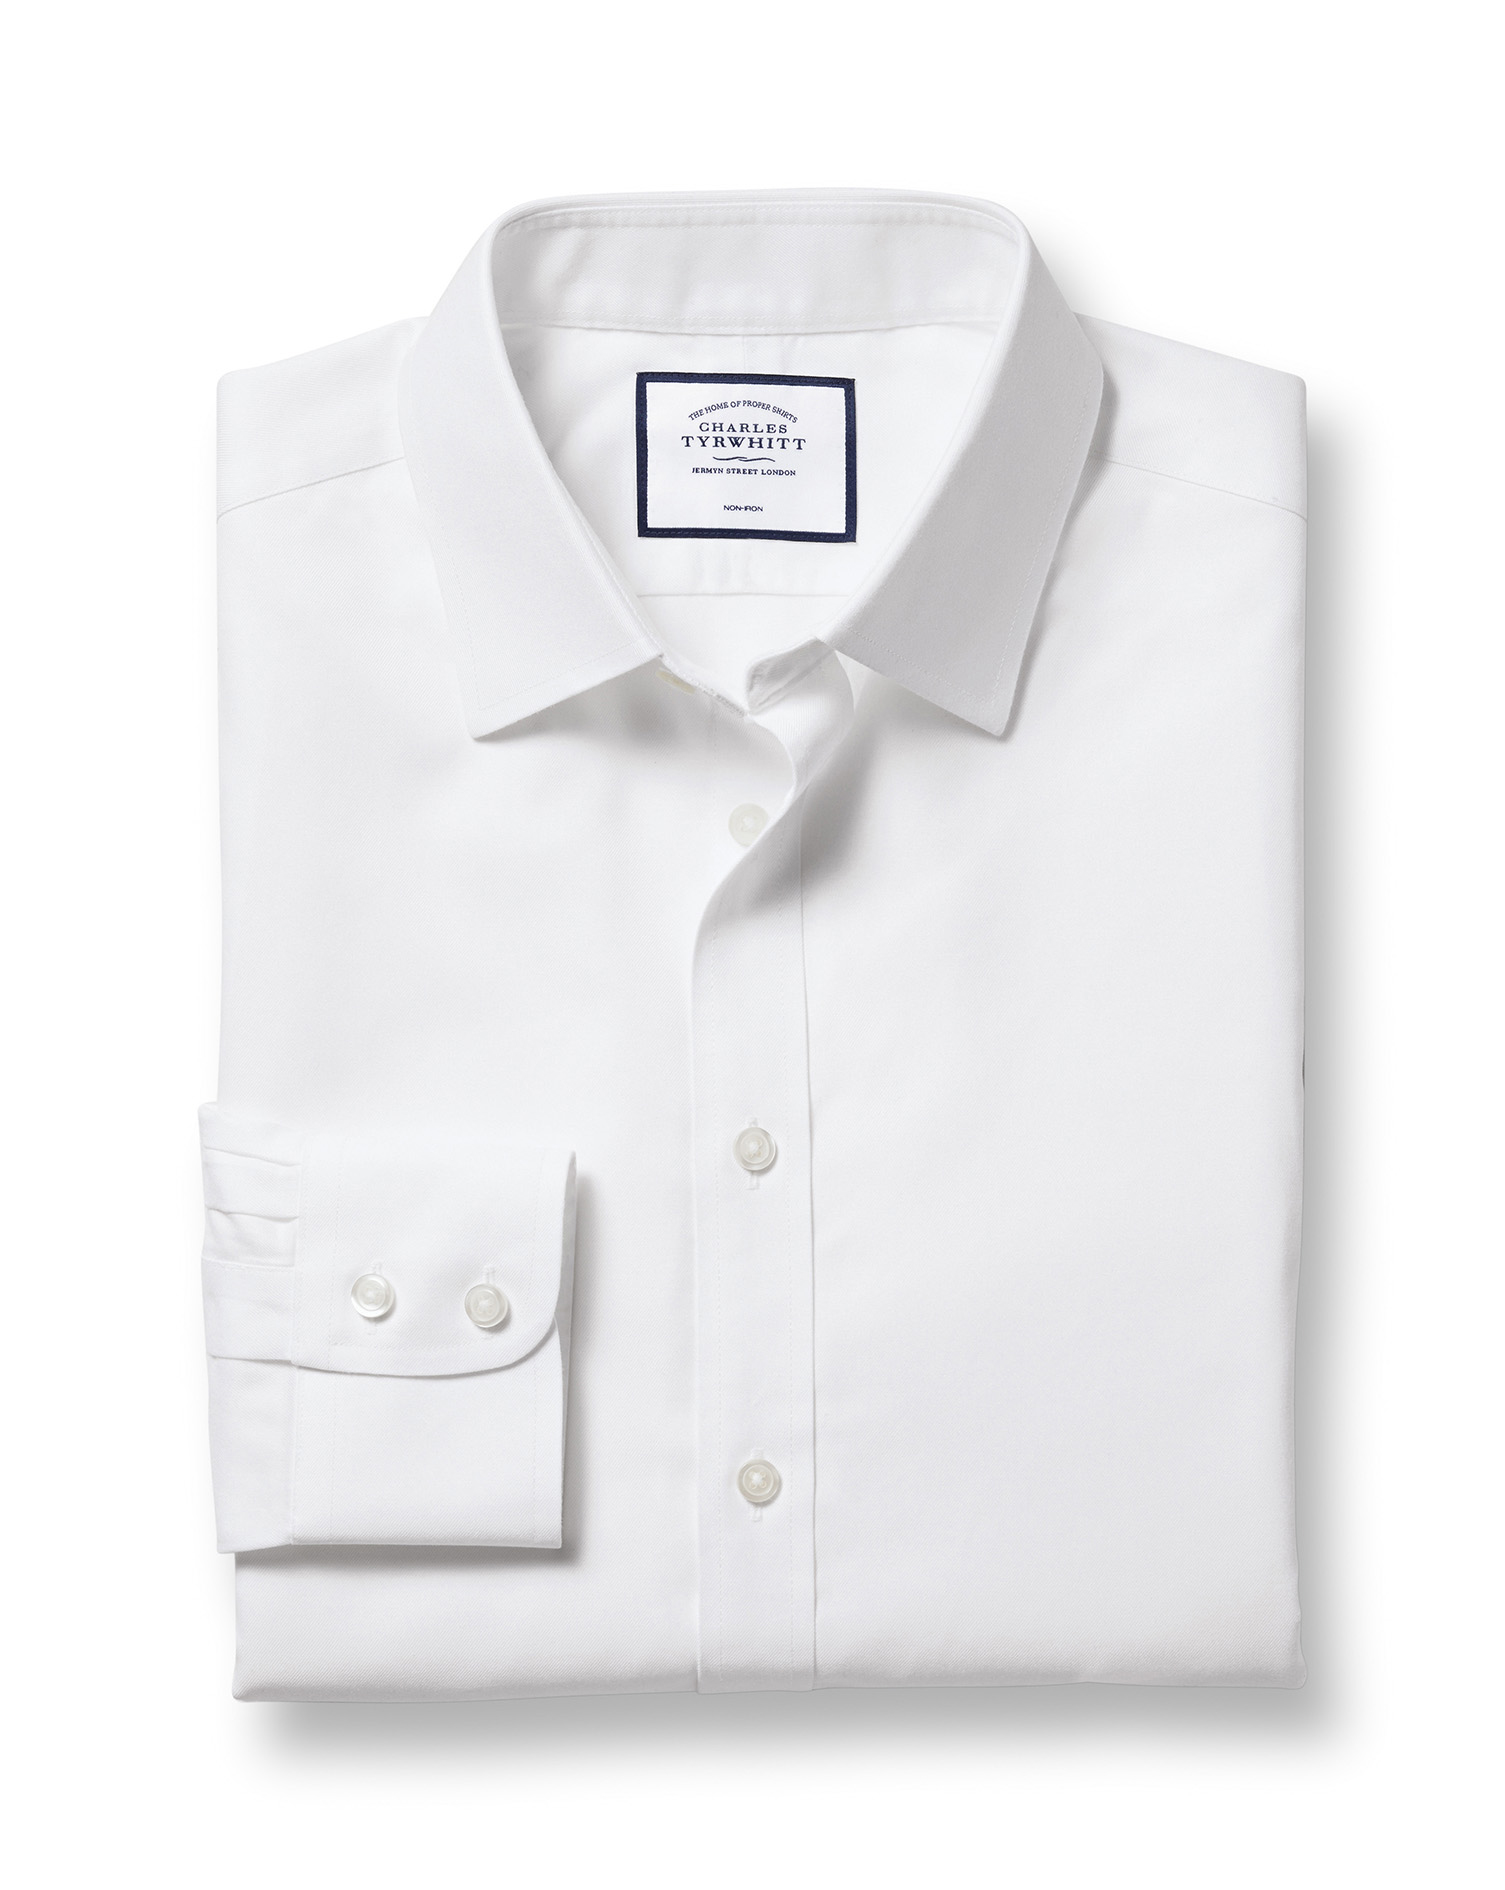 Slim Fit White Non-Iron Twill Cotton Formal Shirt by Charles Tyrwhitt